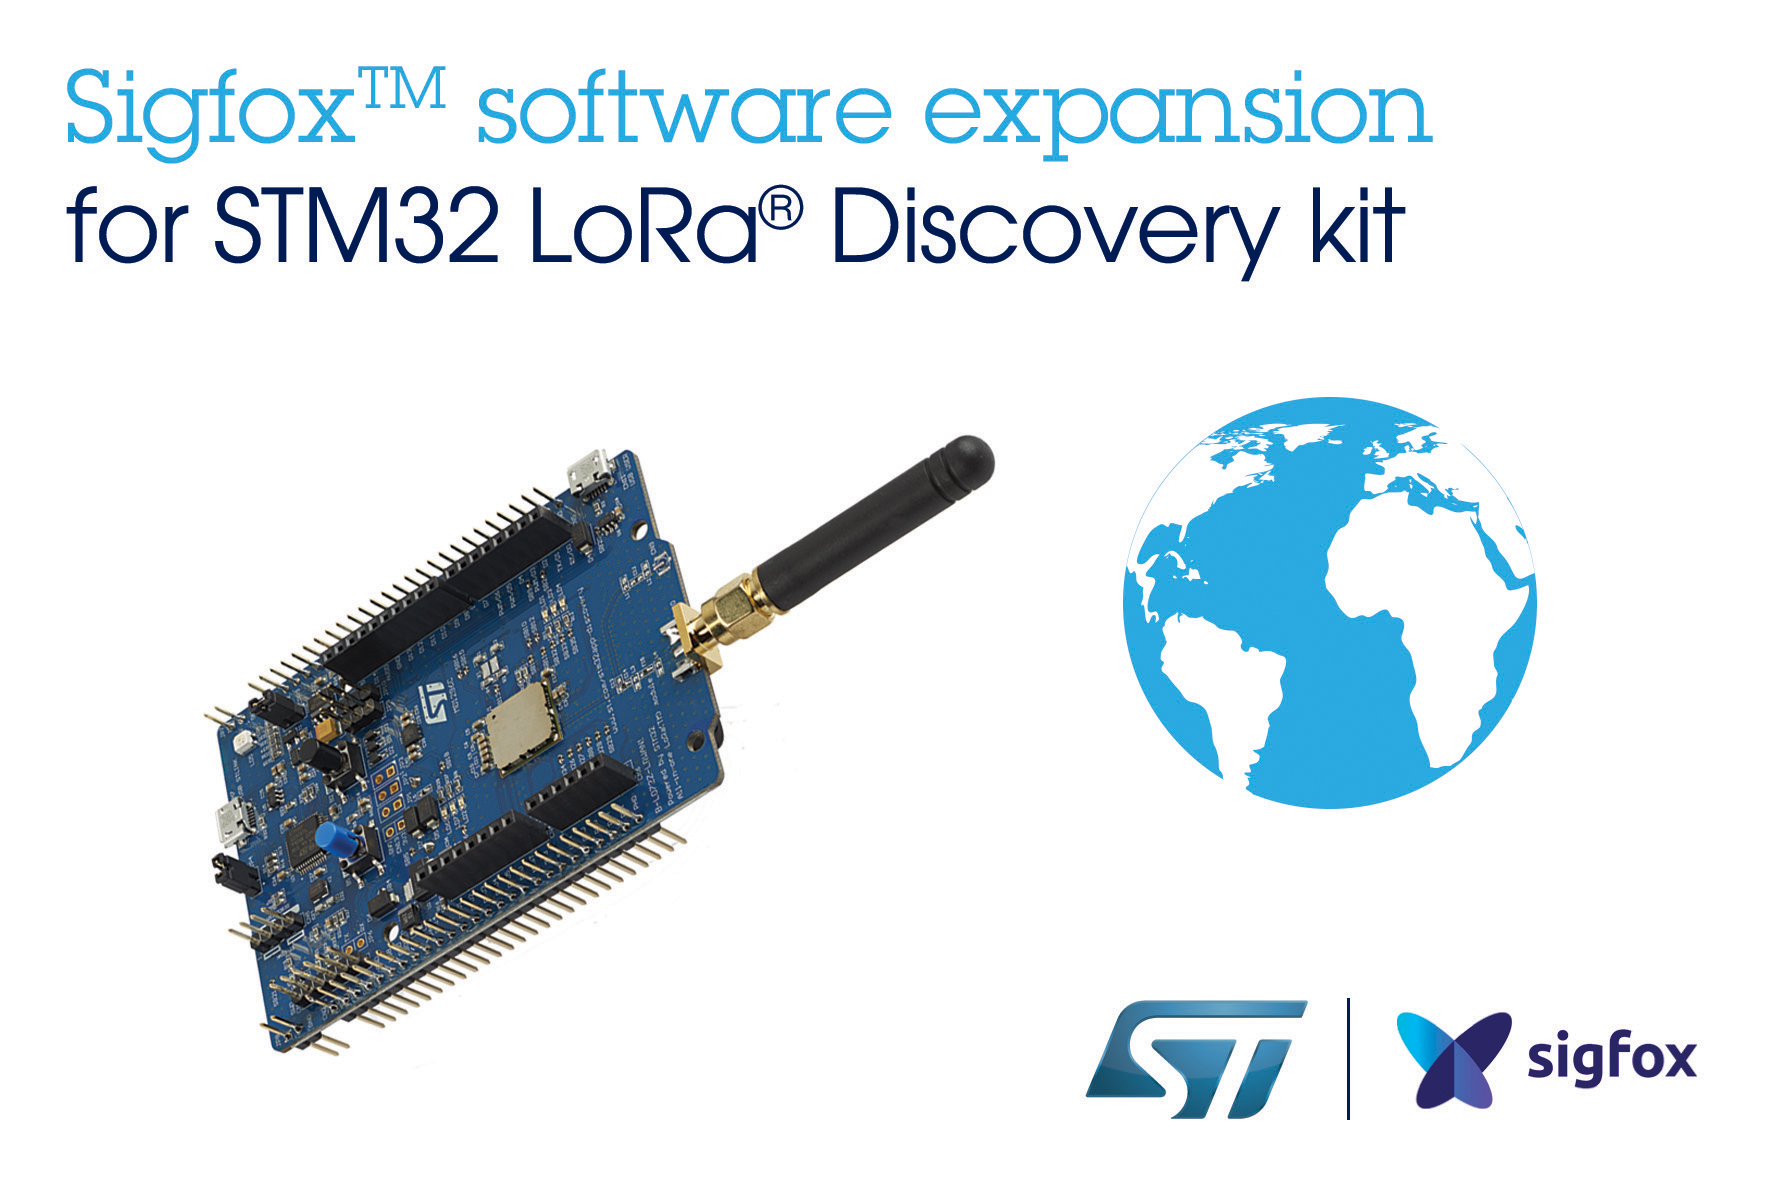 STMicroelectronics' Sigfox™ Embedded Software for STM32